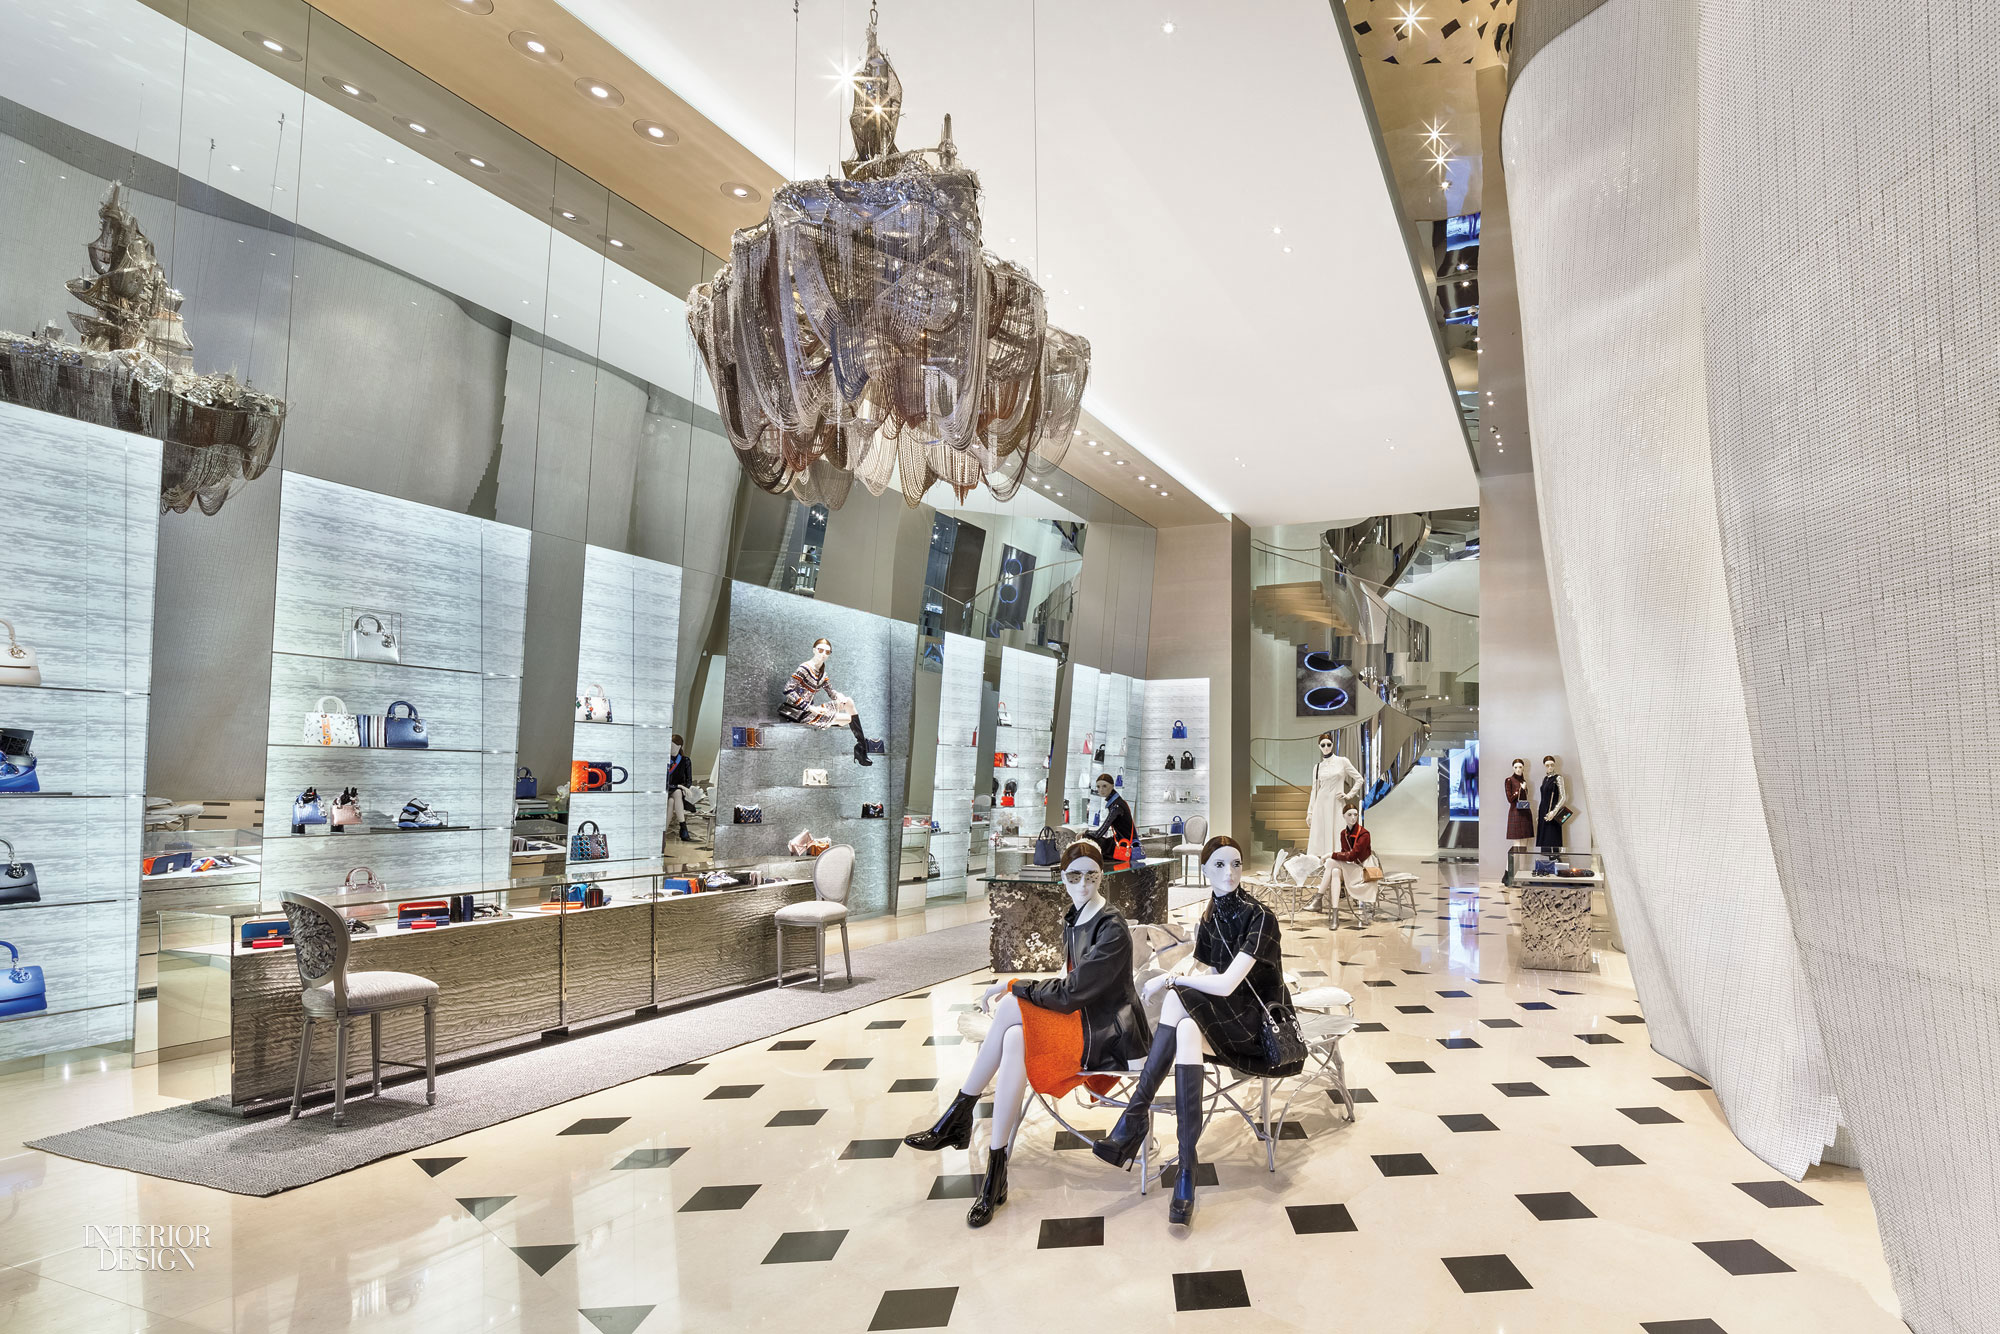 Peter marino designs seoul mega store for dior for Boutique decoration maison